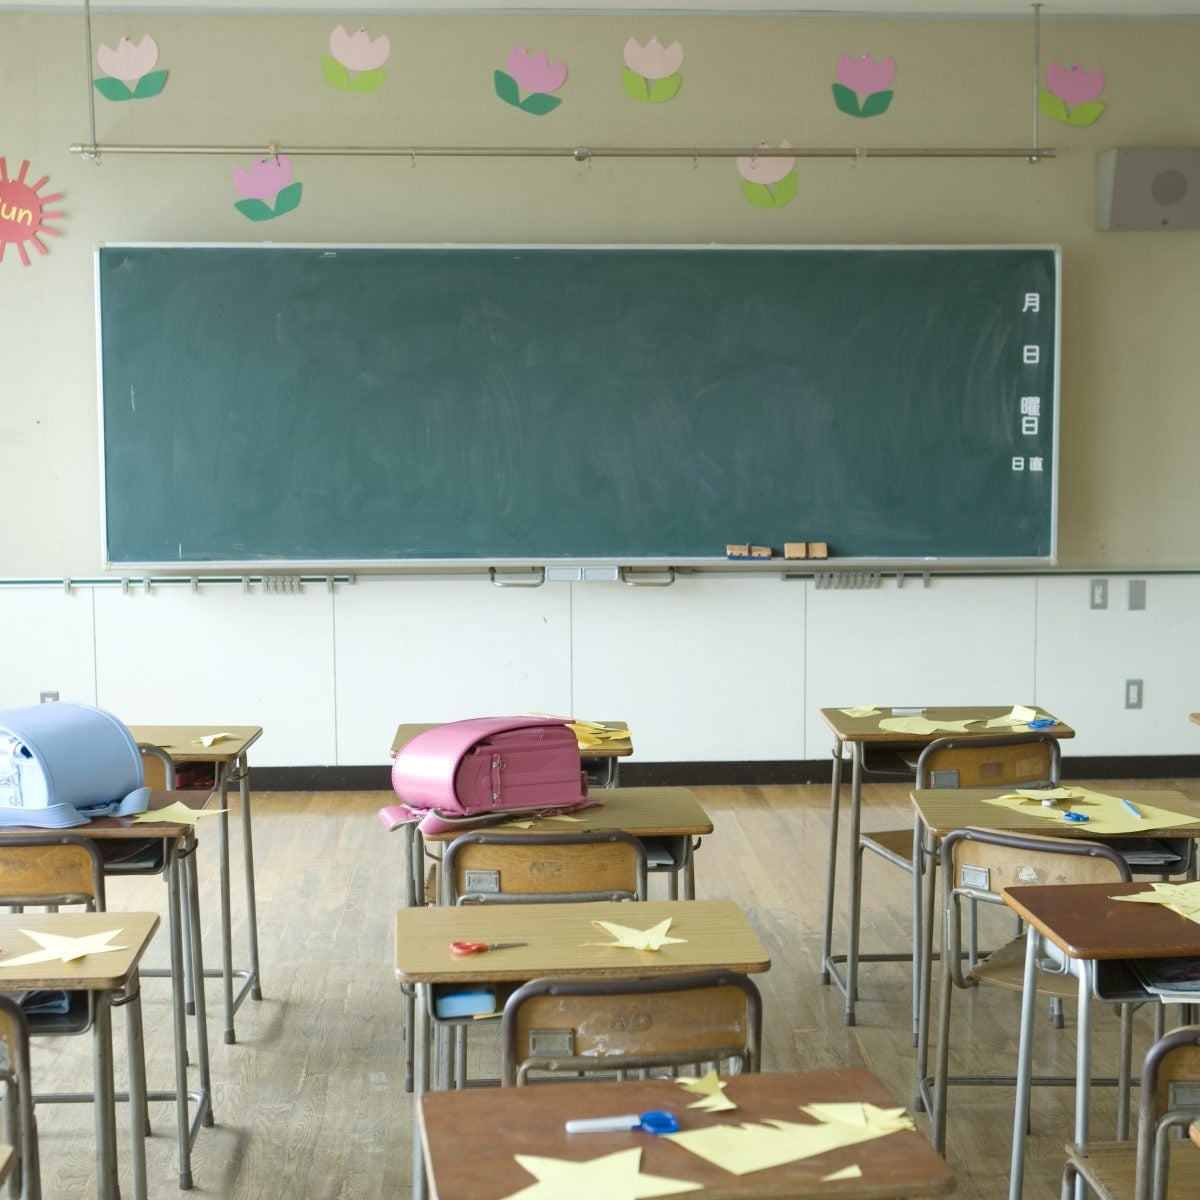 A Principal Reflects On Adjusting To The New Normal and Staying Positive For Her Staff and Students